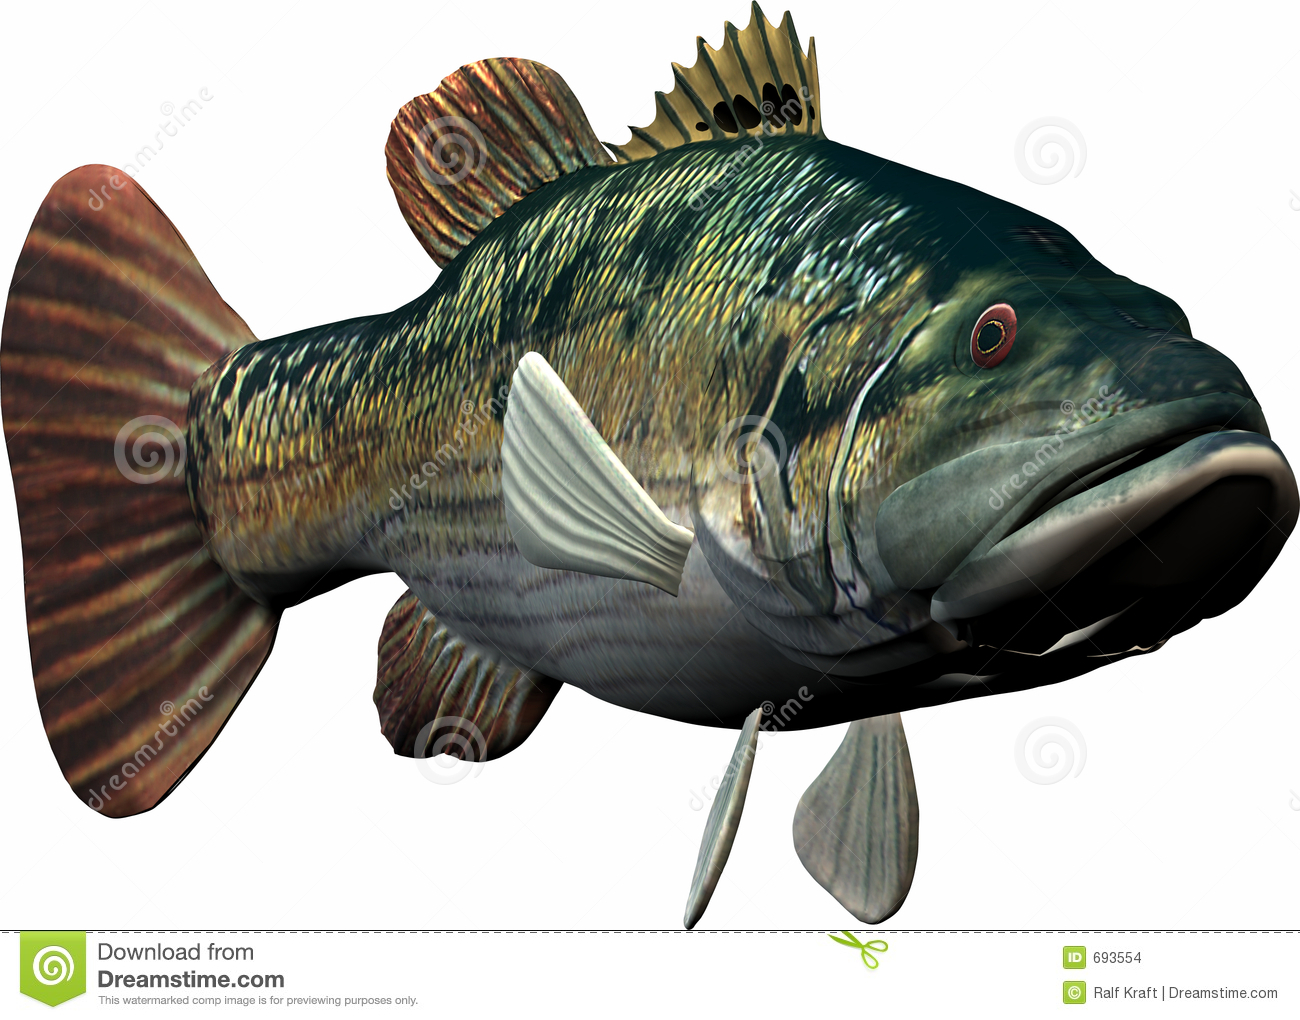 Big Fish Stock Images - Image: 693554